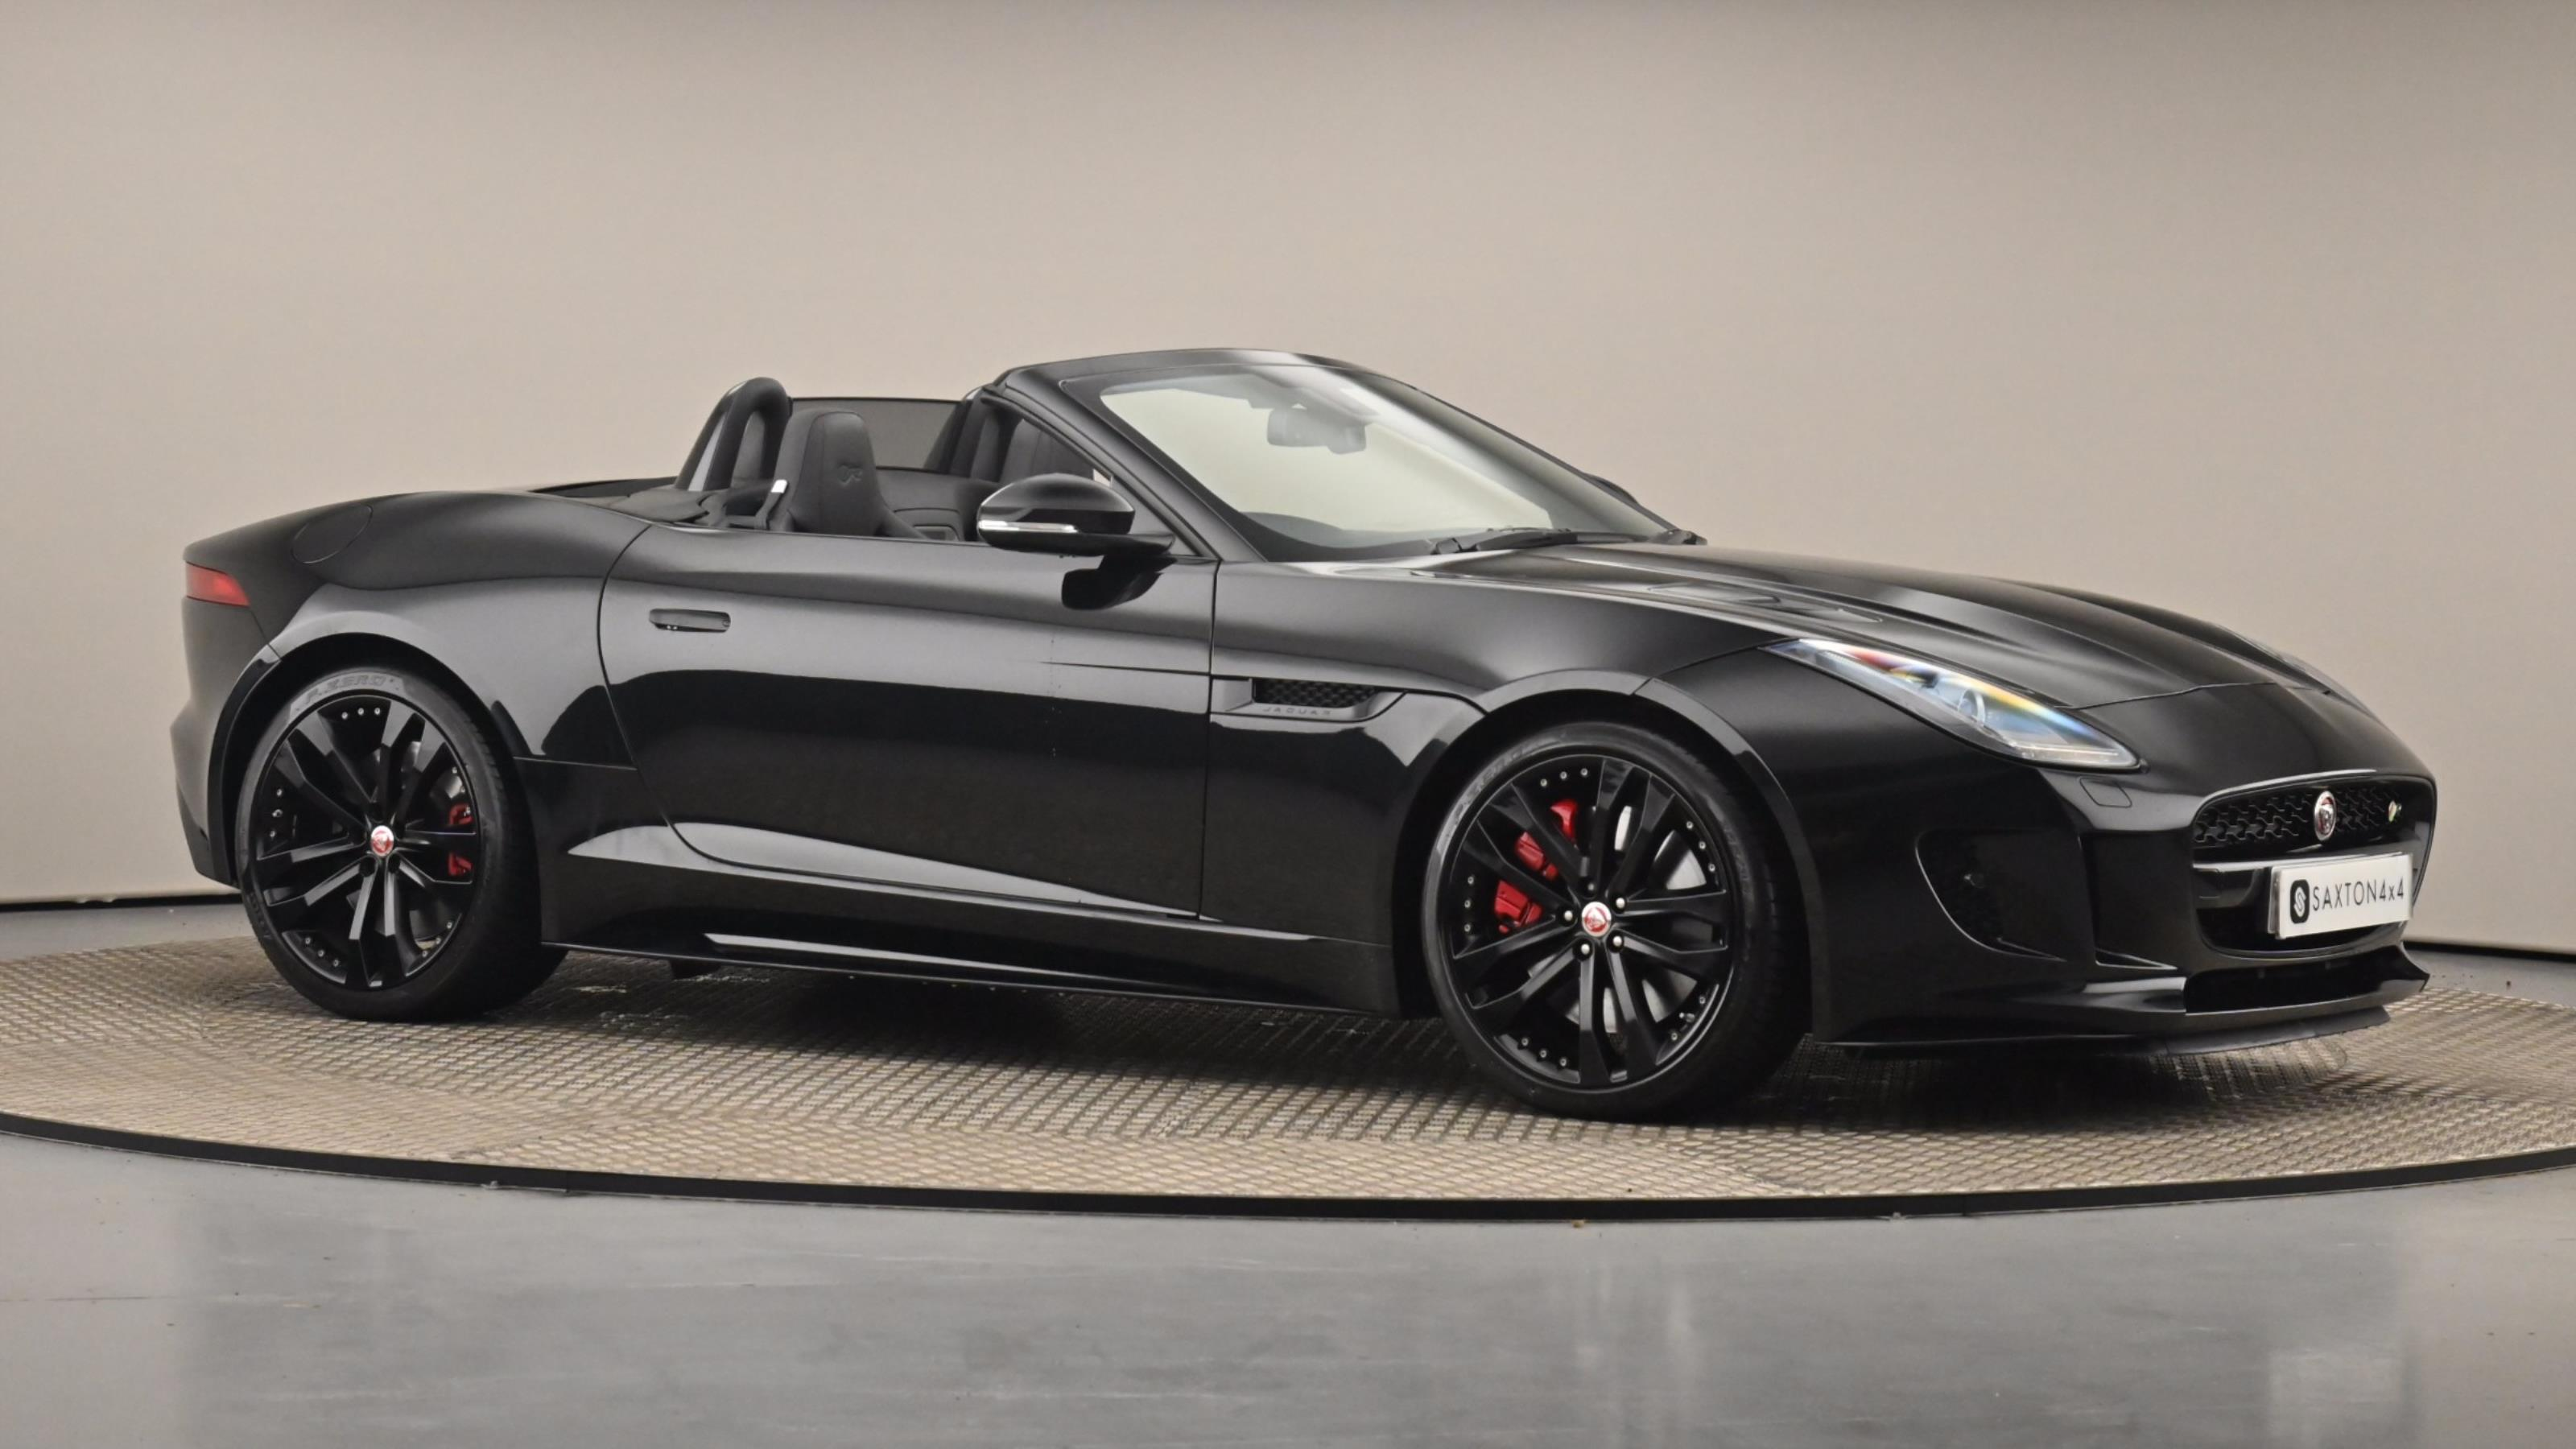 Used 2016 Jaguar F-TYPE 5.0 Supercharged V8 R 2dr Auto AWD Black at Saxton4x4